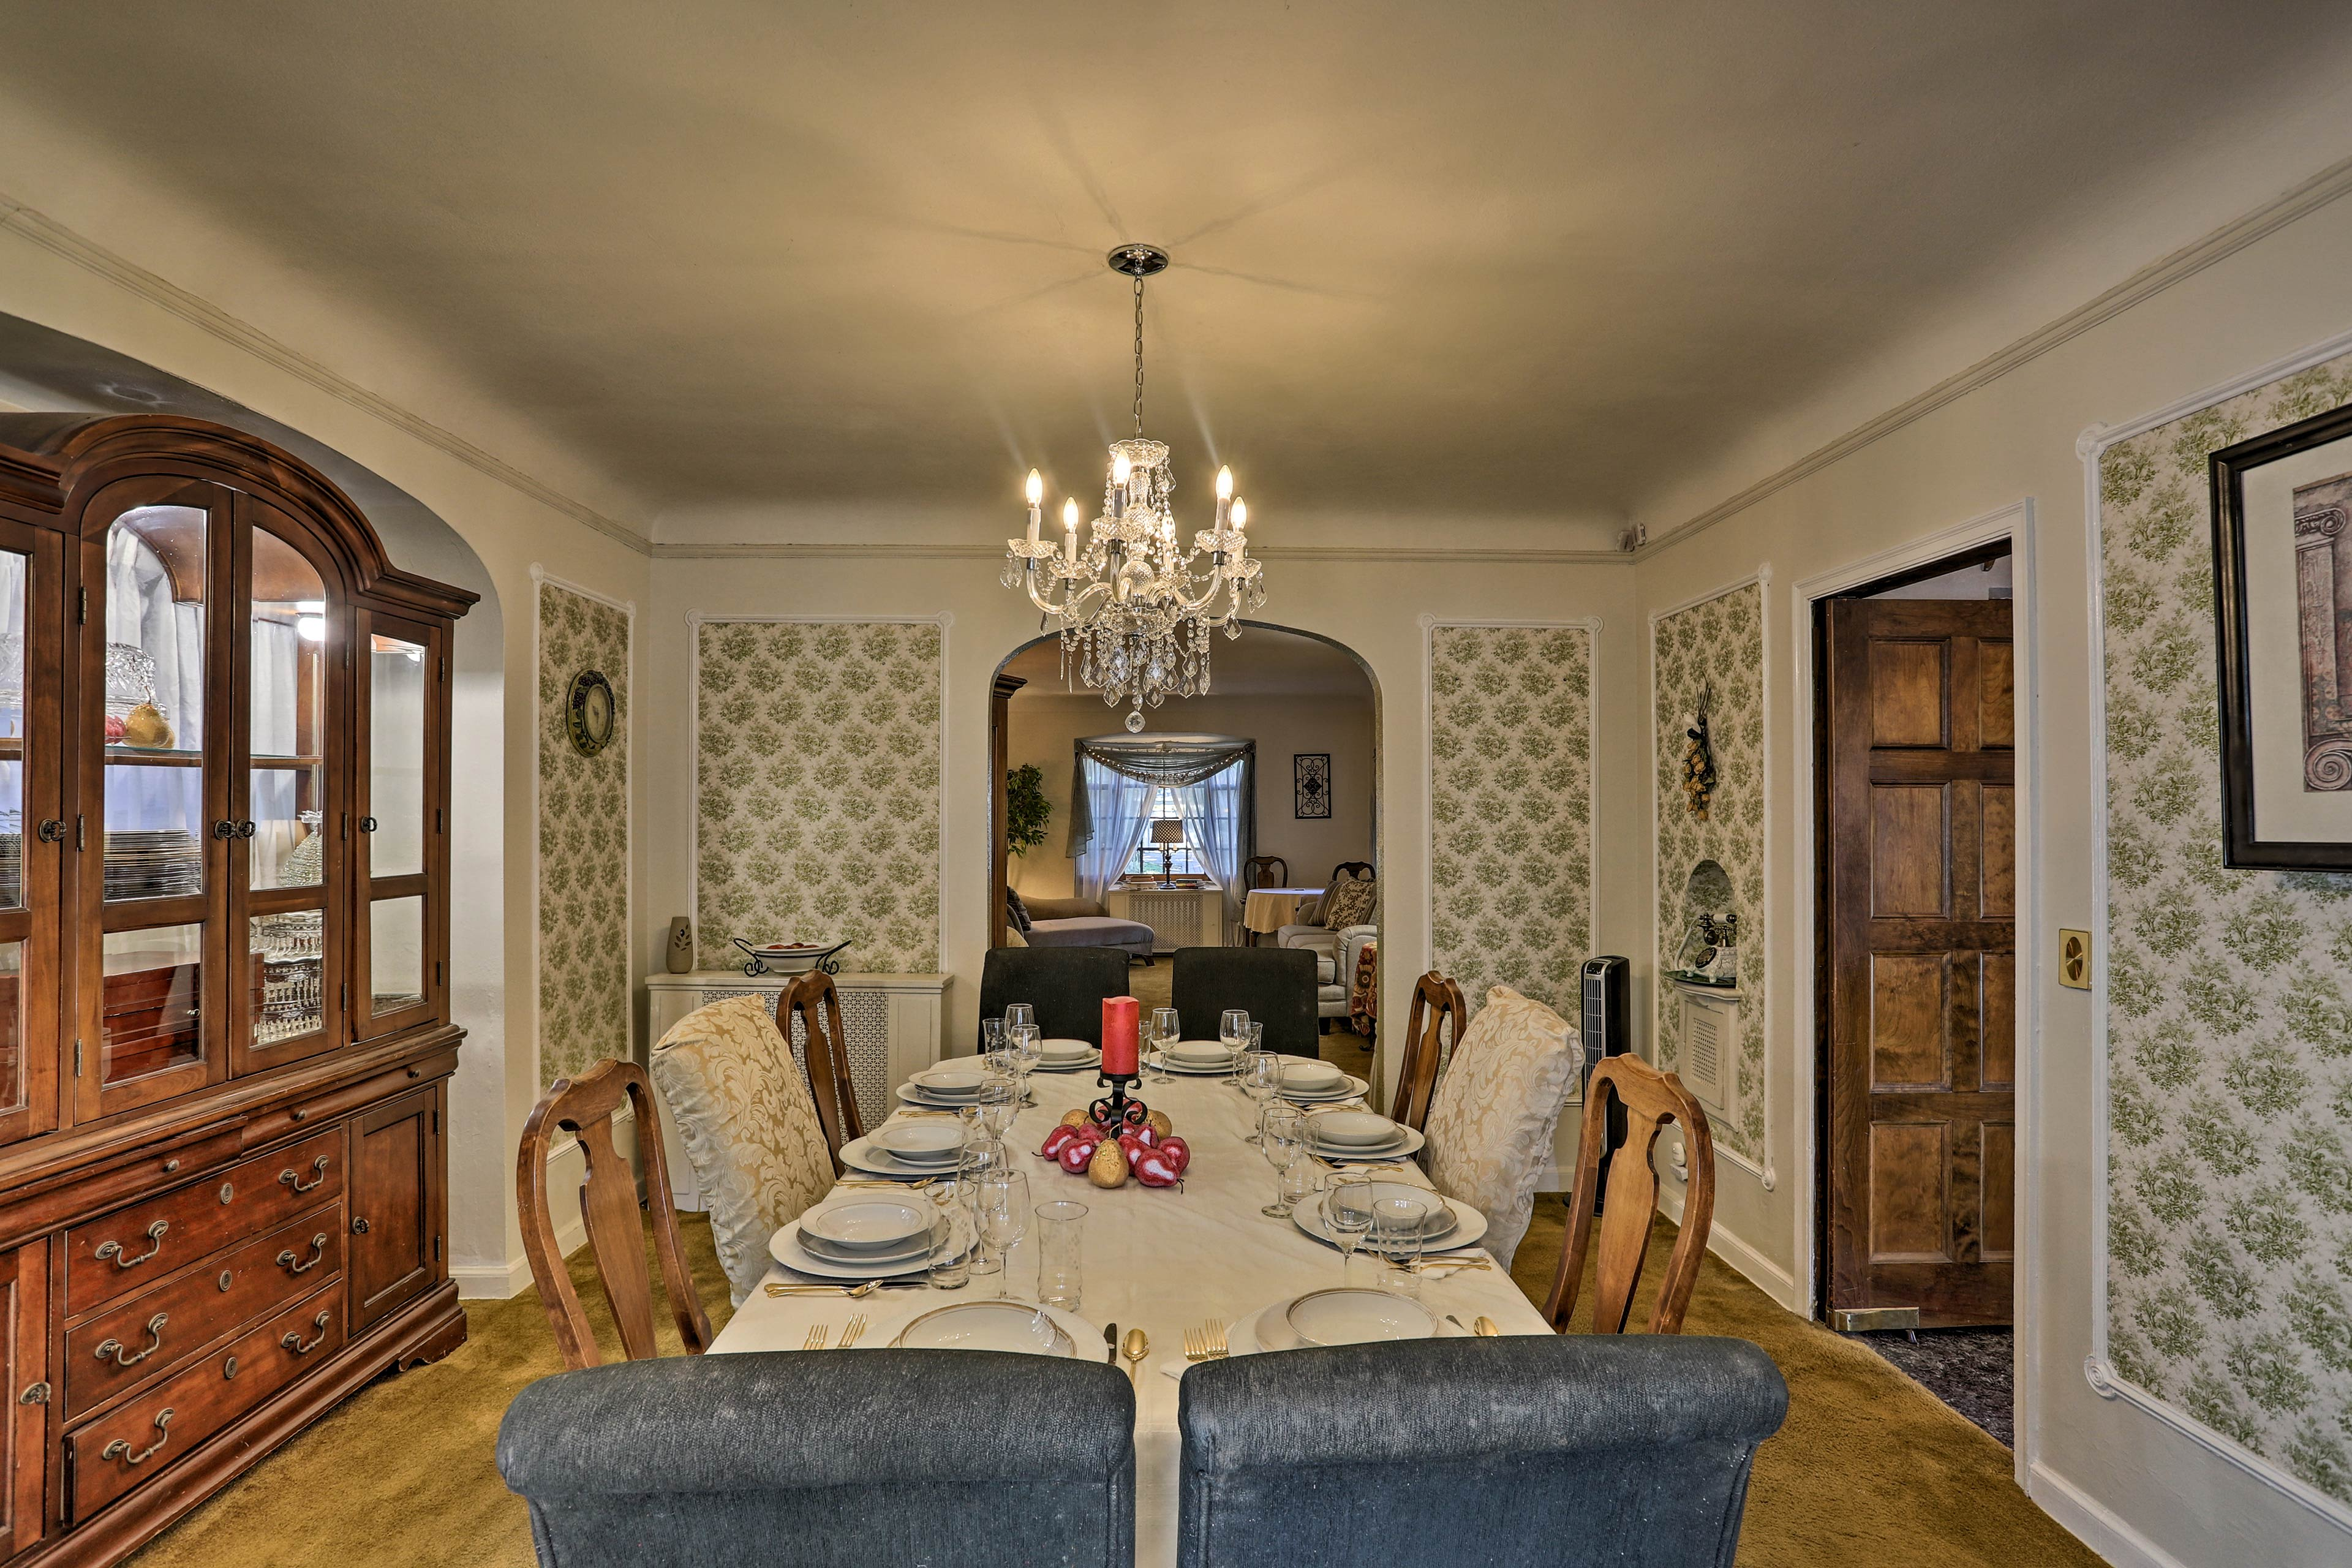 The fancy dining room table can accommodate 8-10 guests!